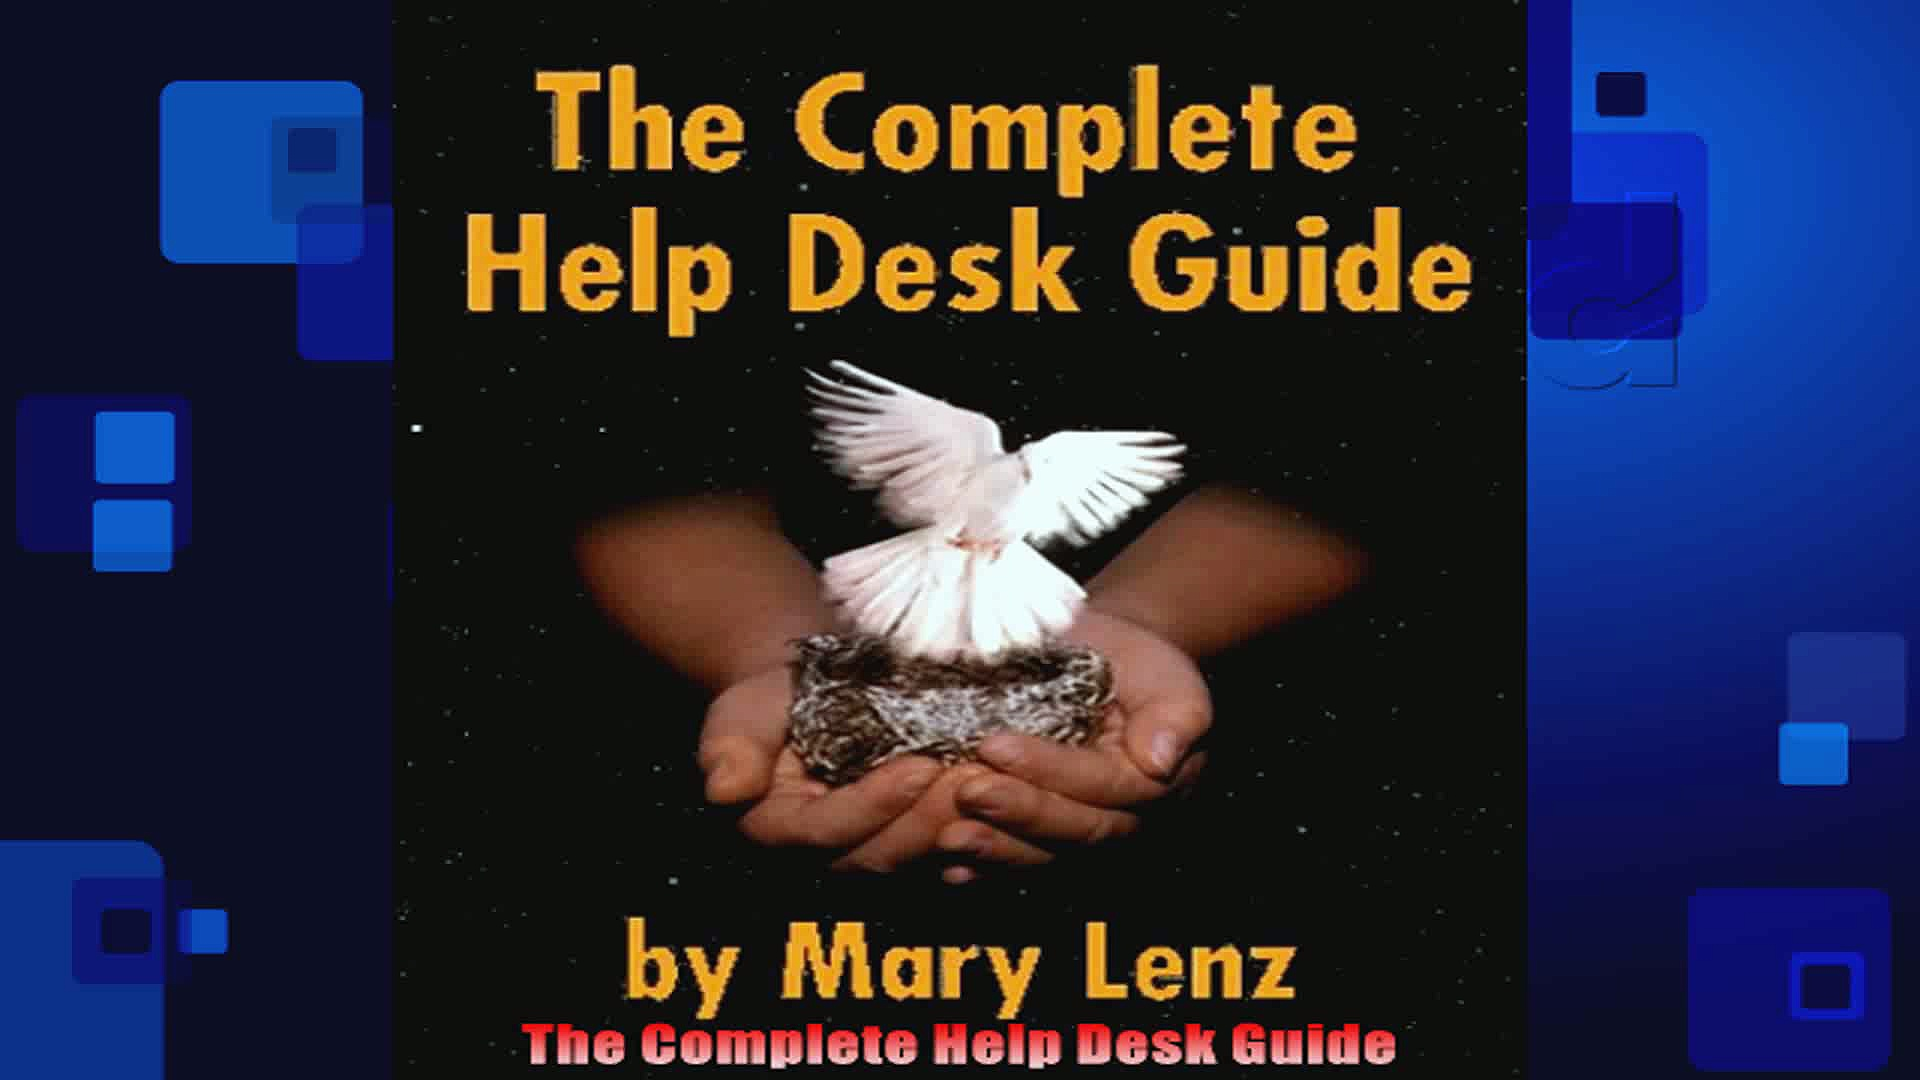 The Complete Help Desk Guide